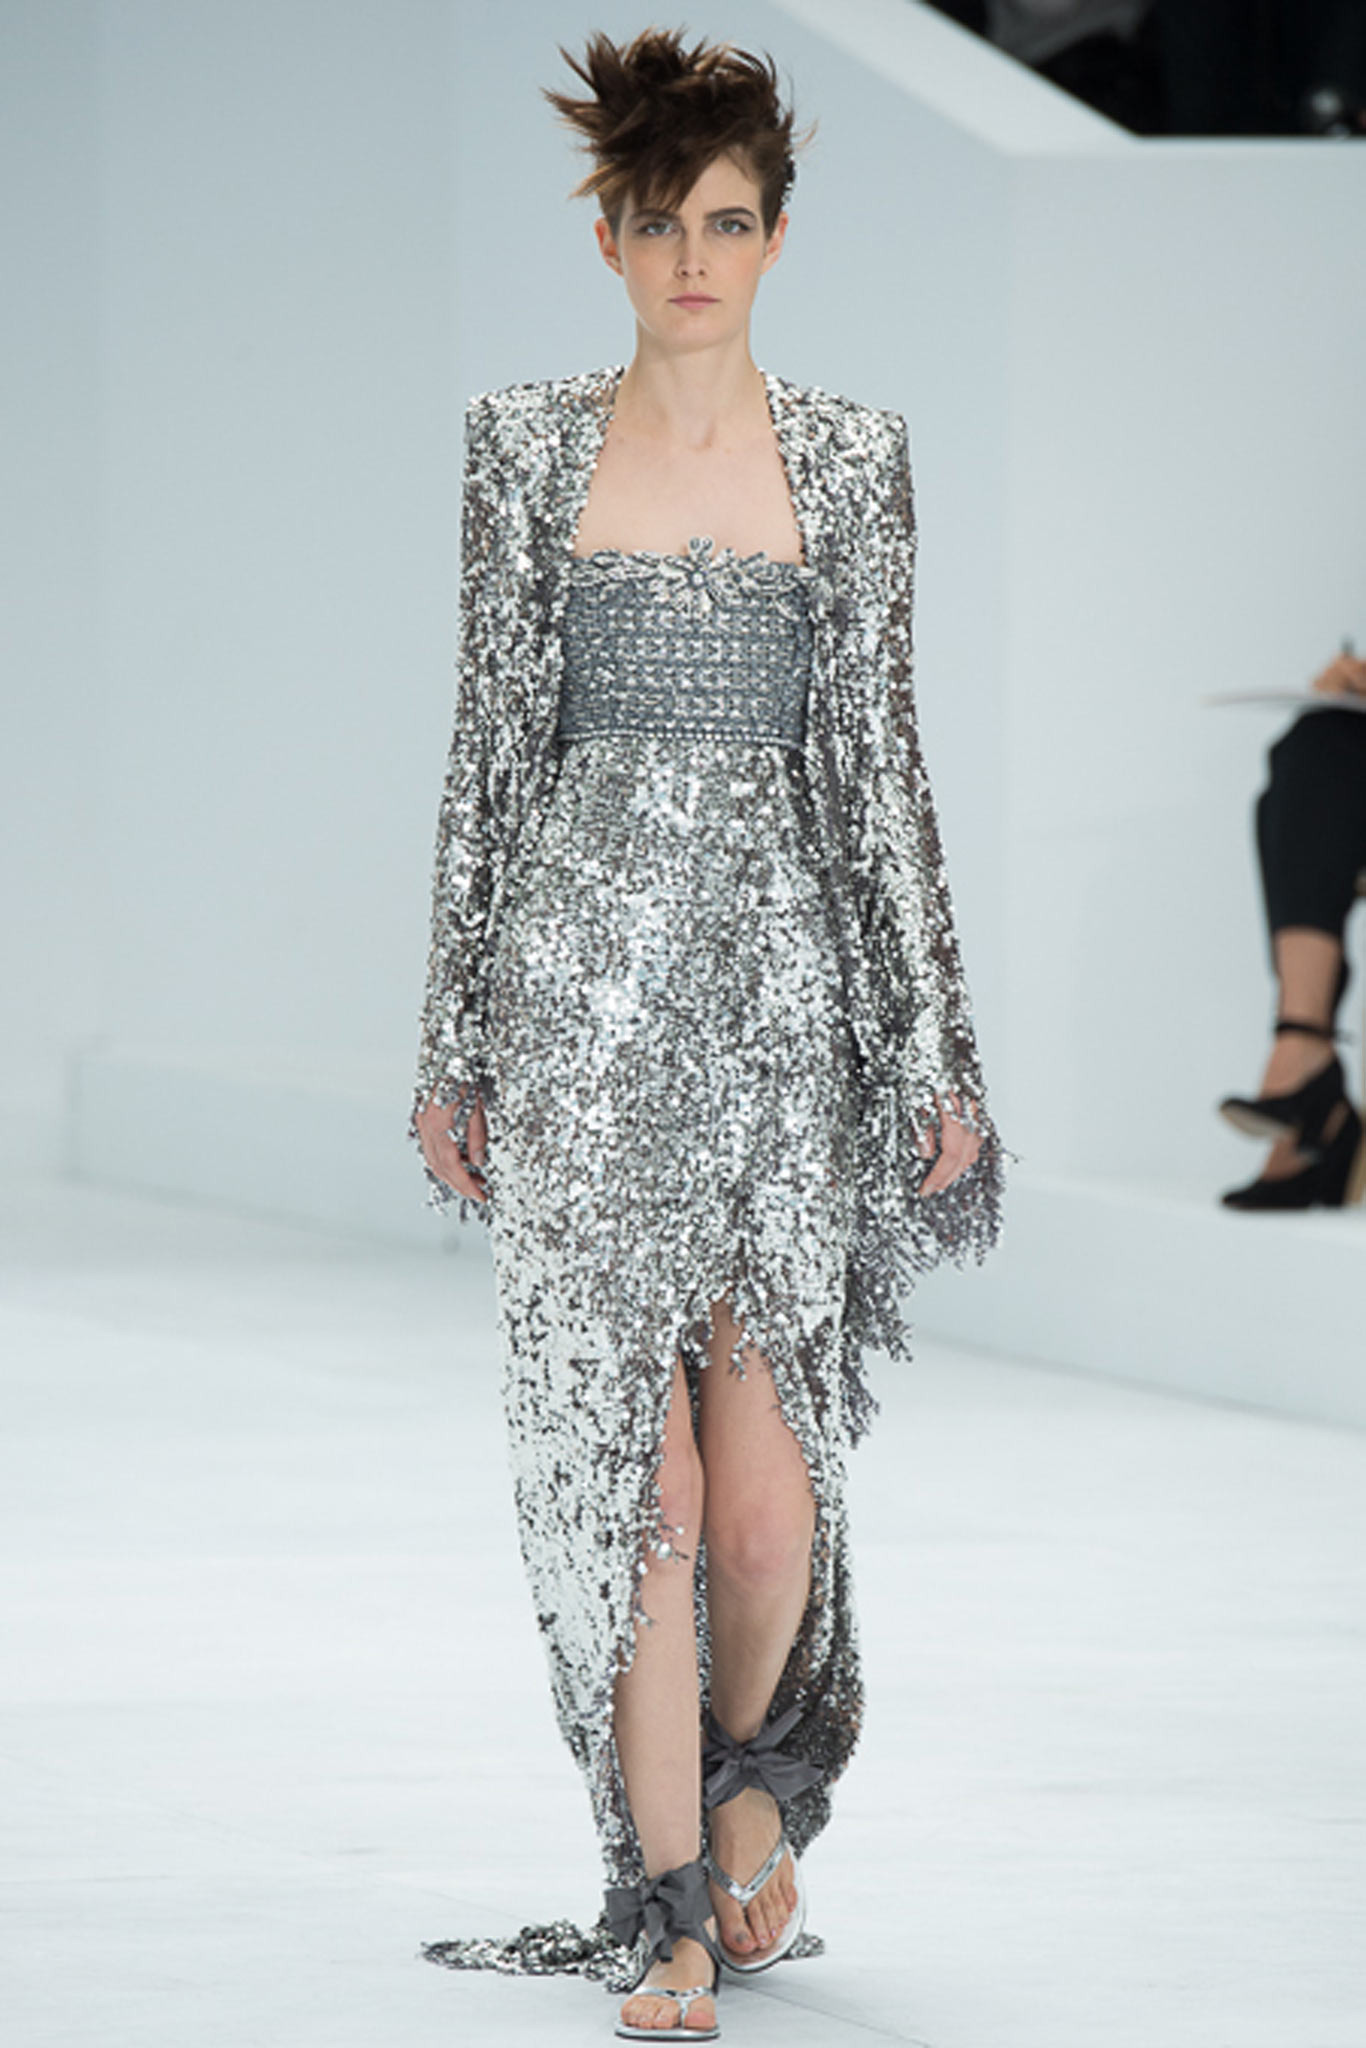 chanel-couture-fall-2014-12_105826761441